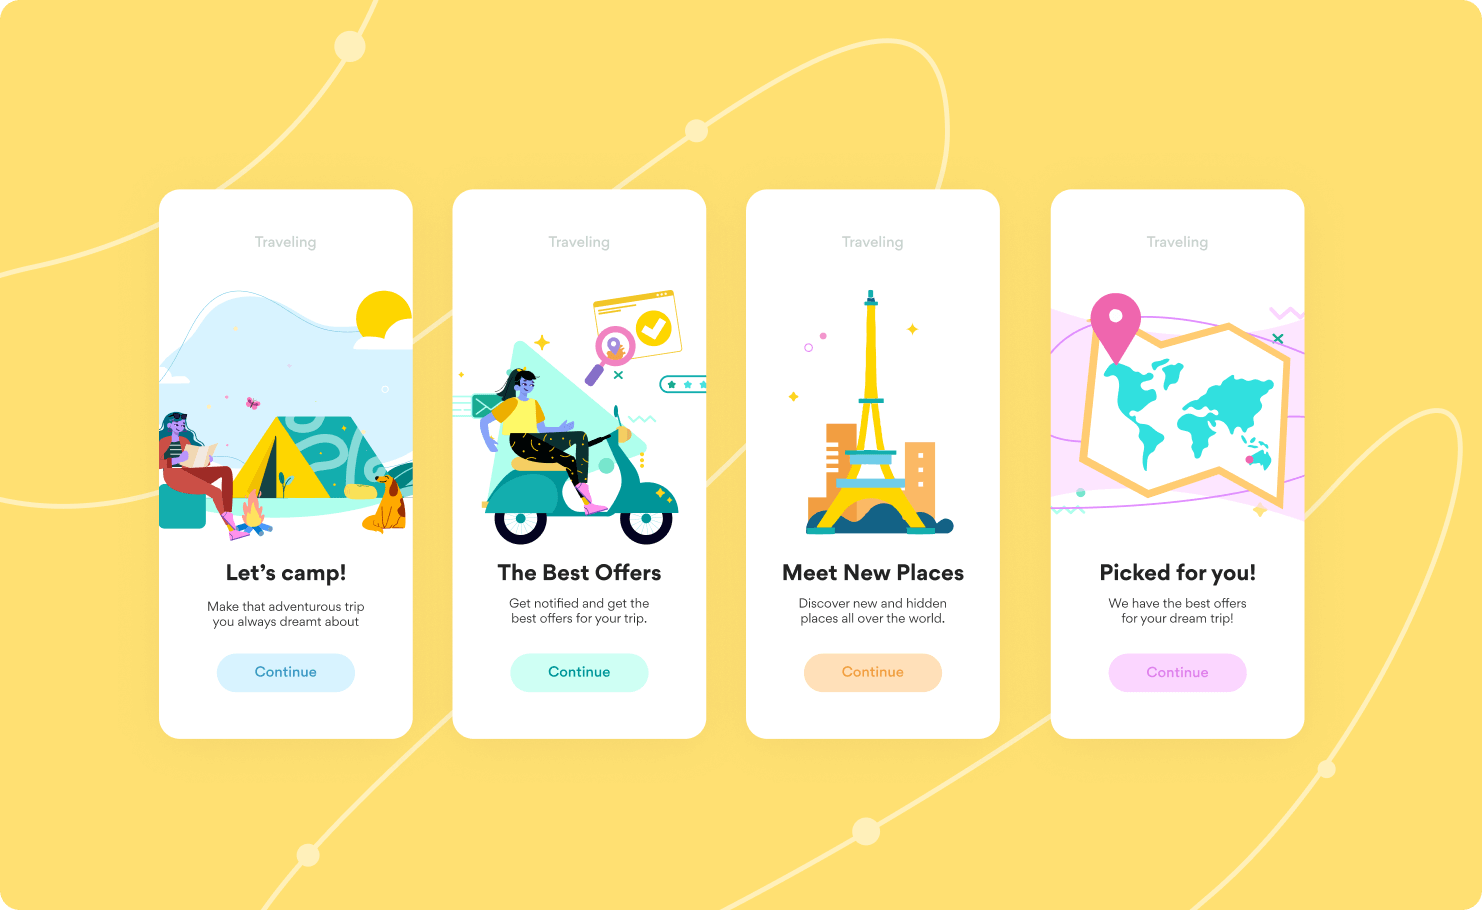 Four onboarding screens featuring illustrations from the collection Nomads.